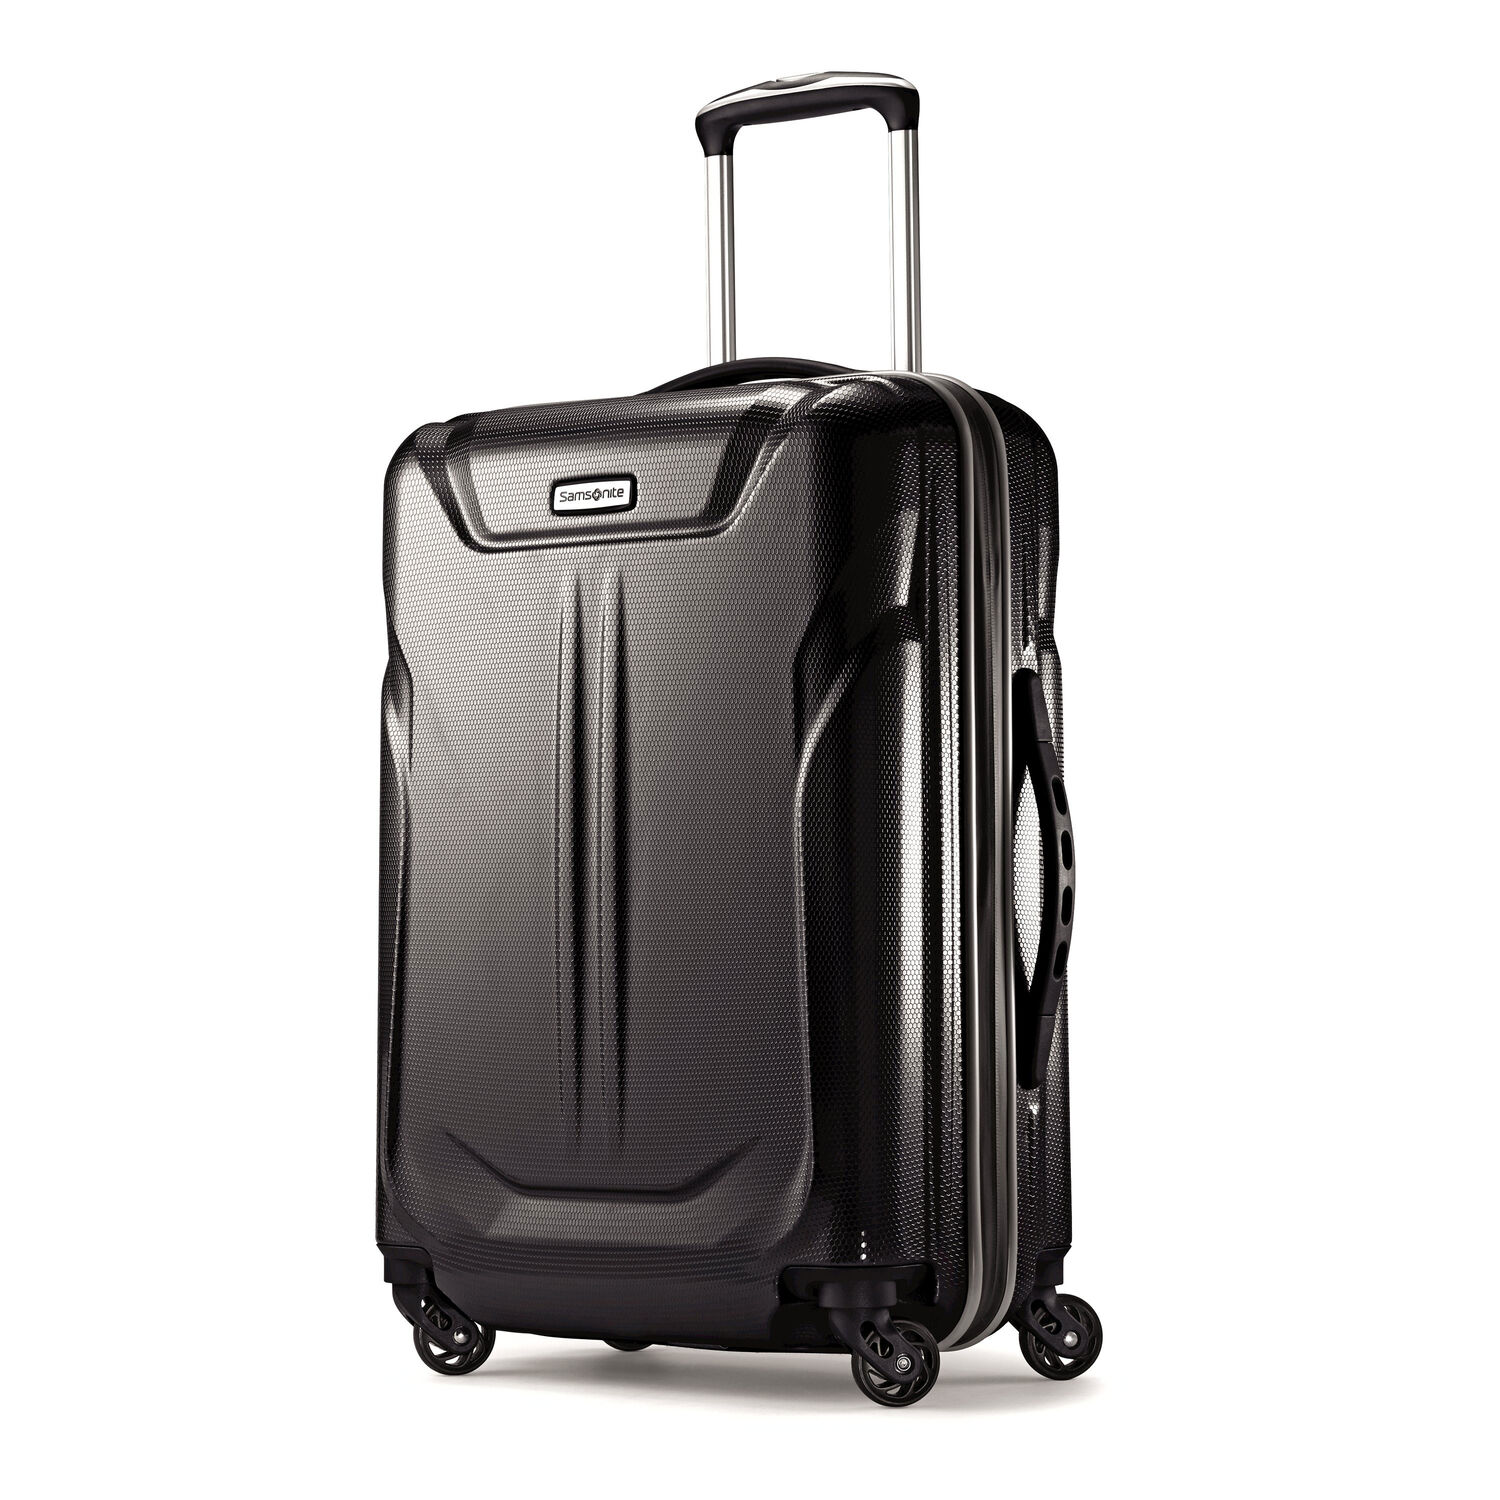 Samsonite Lift2 21